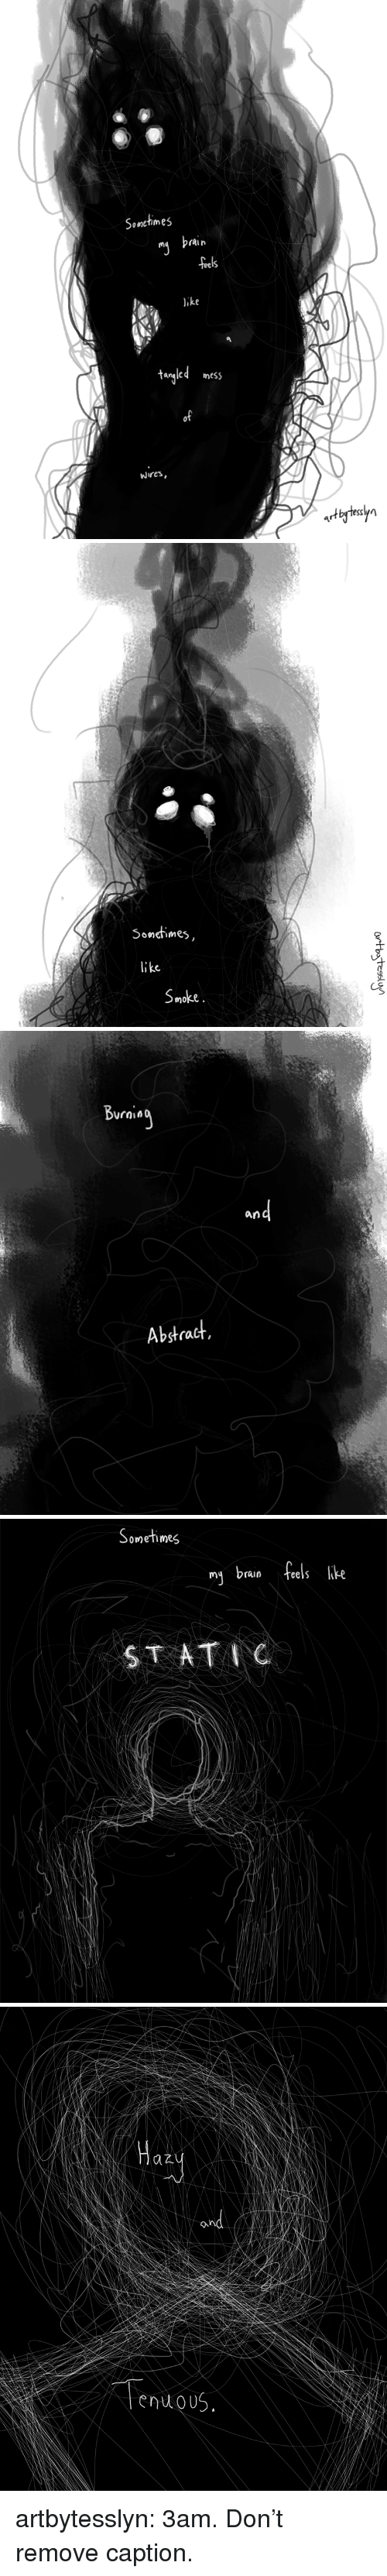 Tumblr, Blog, and Http: Sonchmes  rain  feels  like  tangled mtSS  of  Wires,   Sonefimes  Smoke   Burai«  and  Abstradt   Sometimes  ni bran feels lke  ST AT   azy  and  enuOU artbytesslyn: 3am. Don't remove caption.